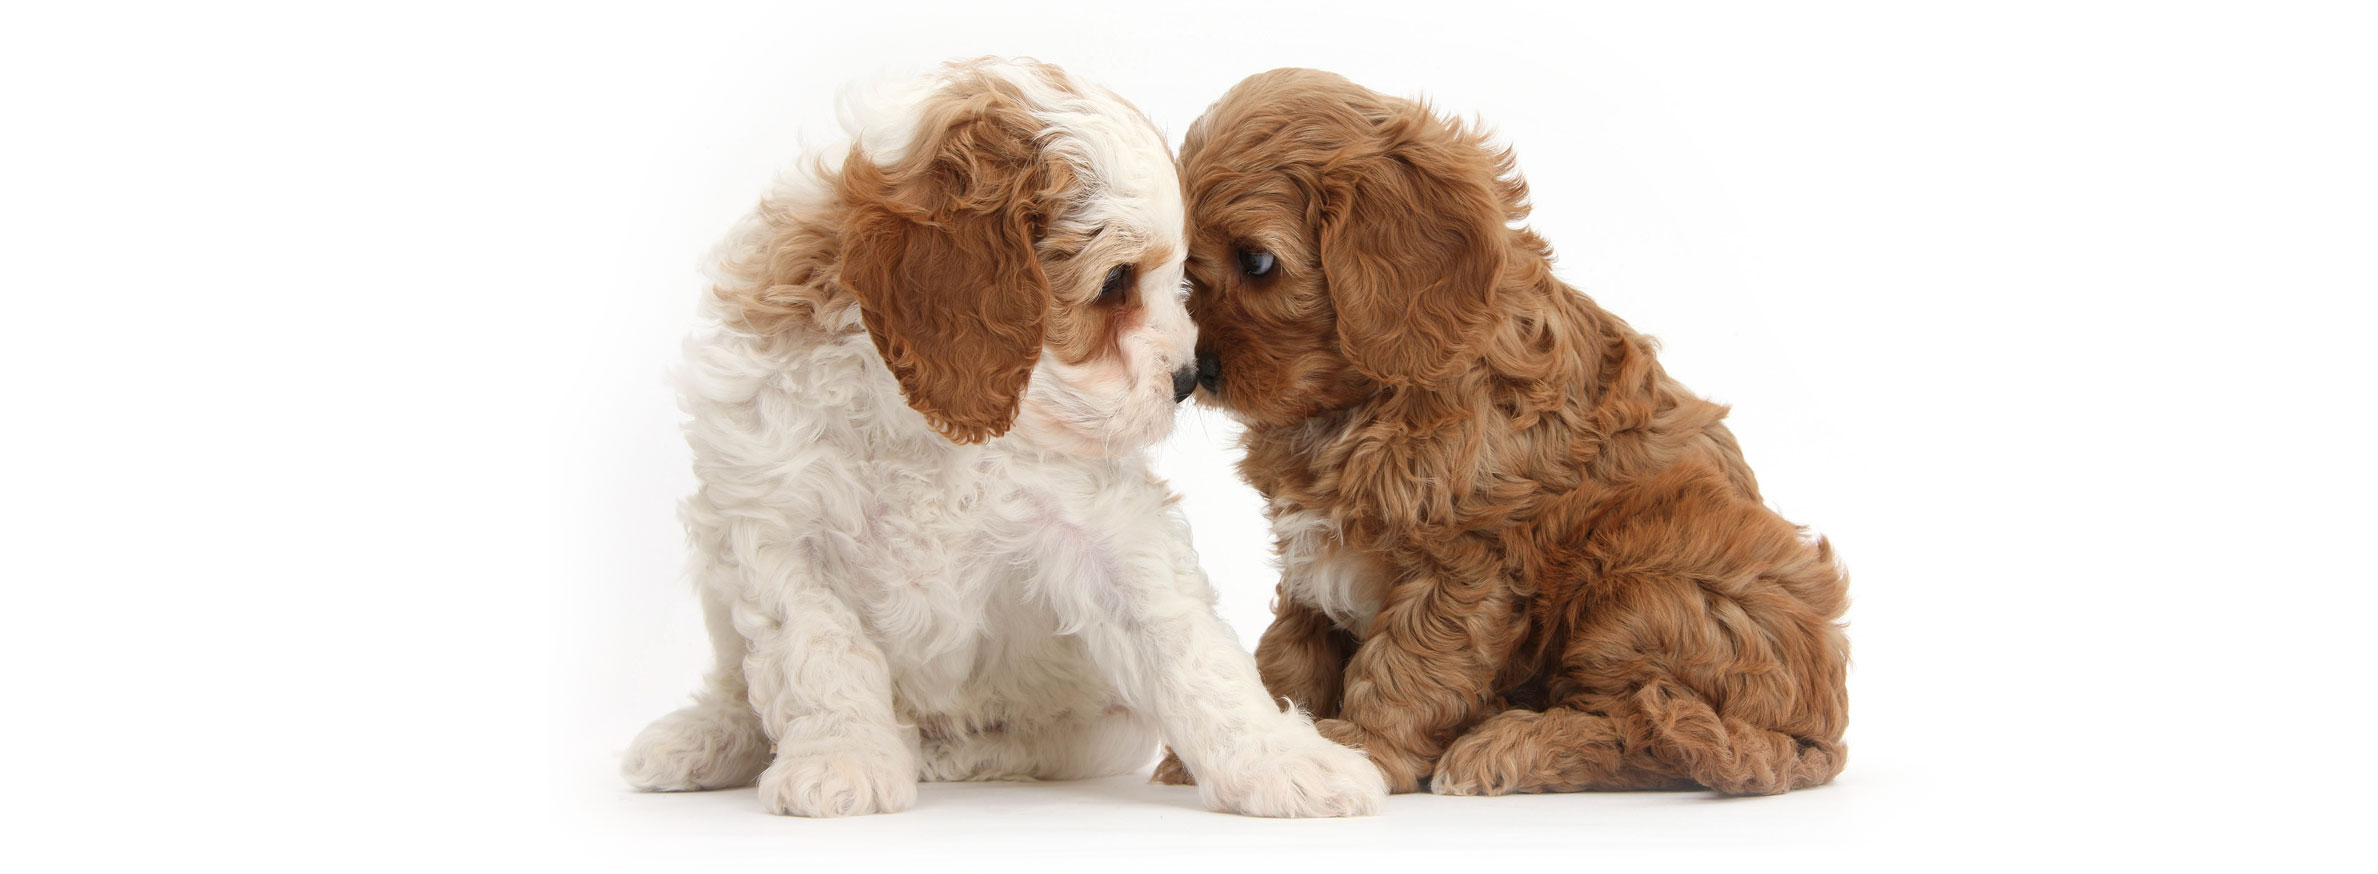 Utah labradoodle puppies